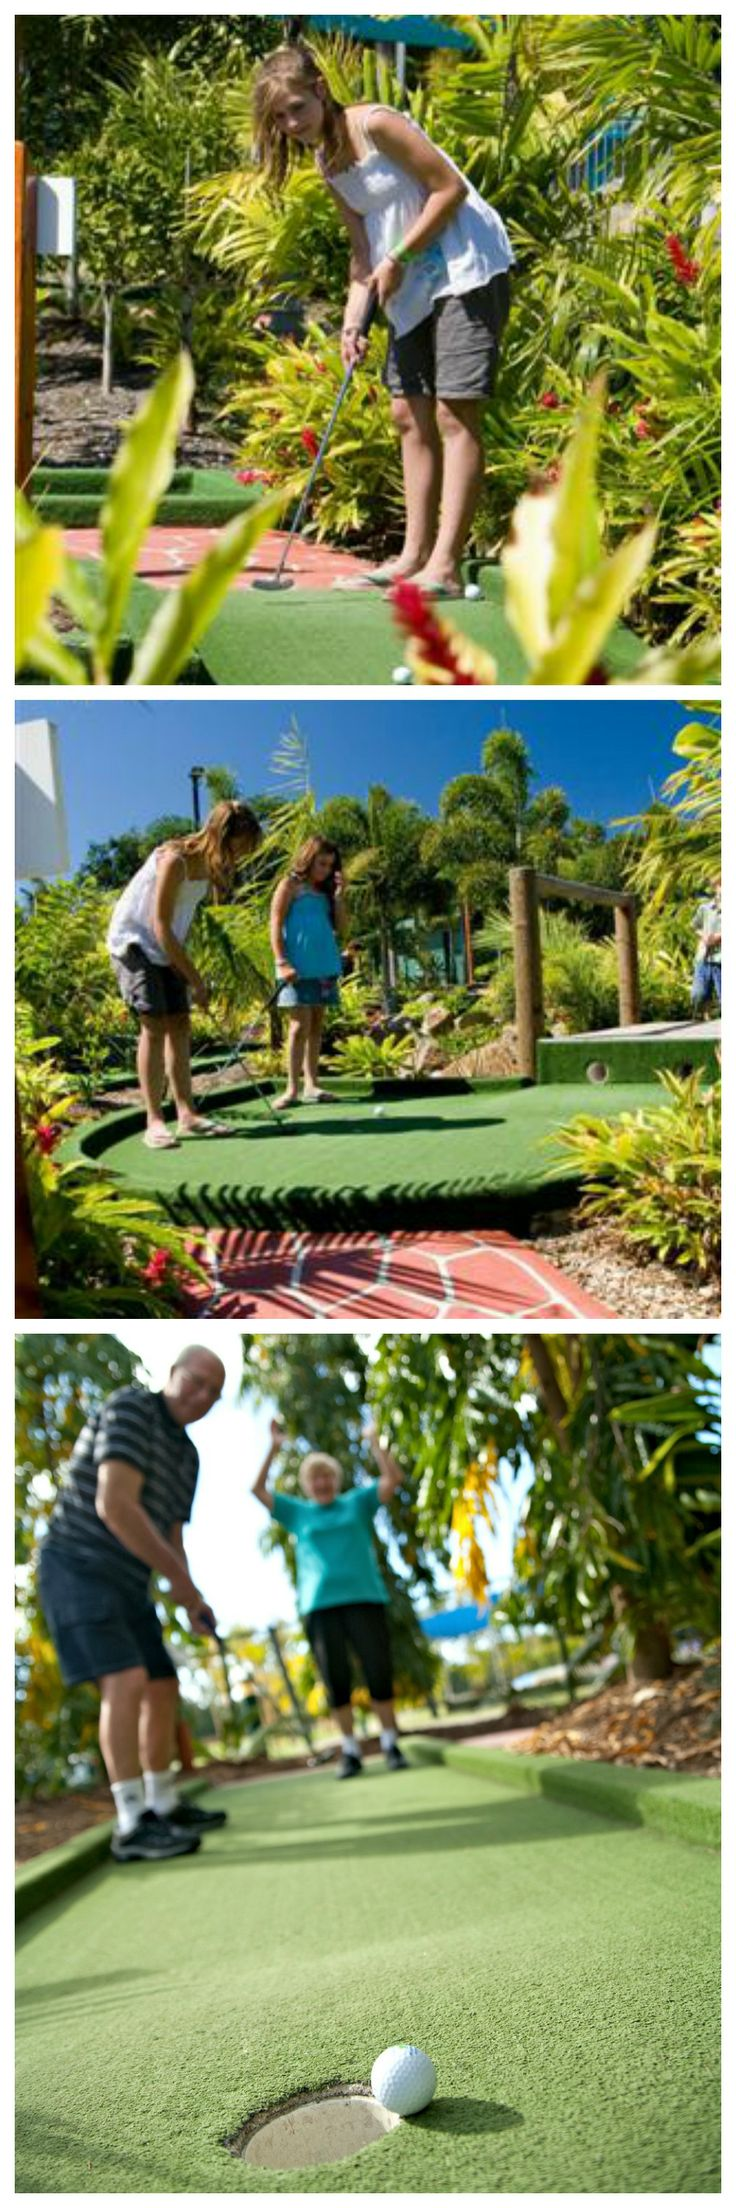 We have an 18-hole mini golf course on the grounds of the resort. Fun for all ages to enjoy!